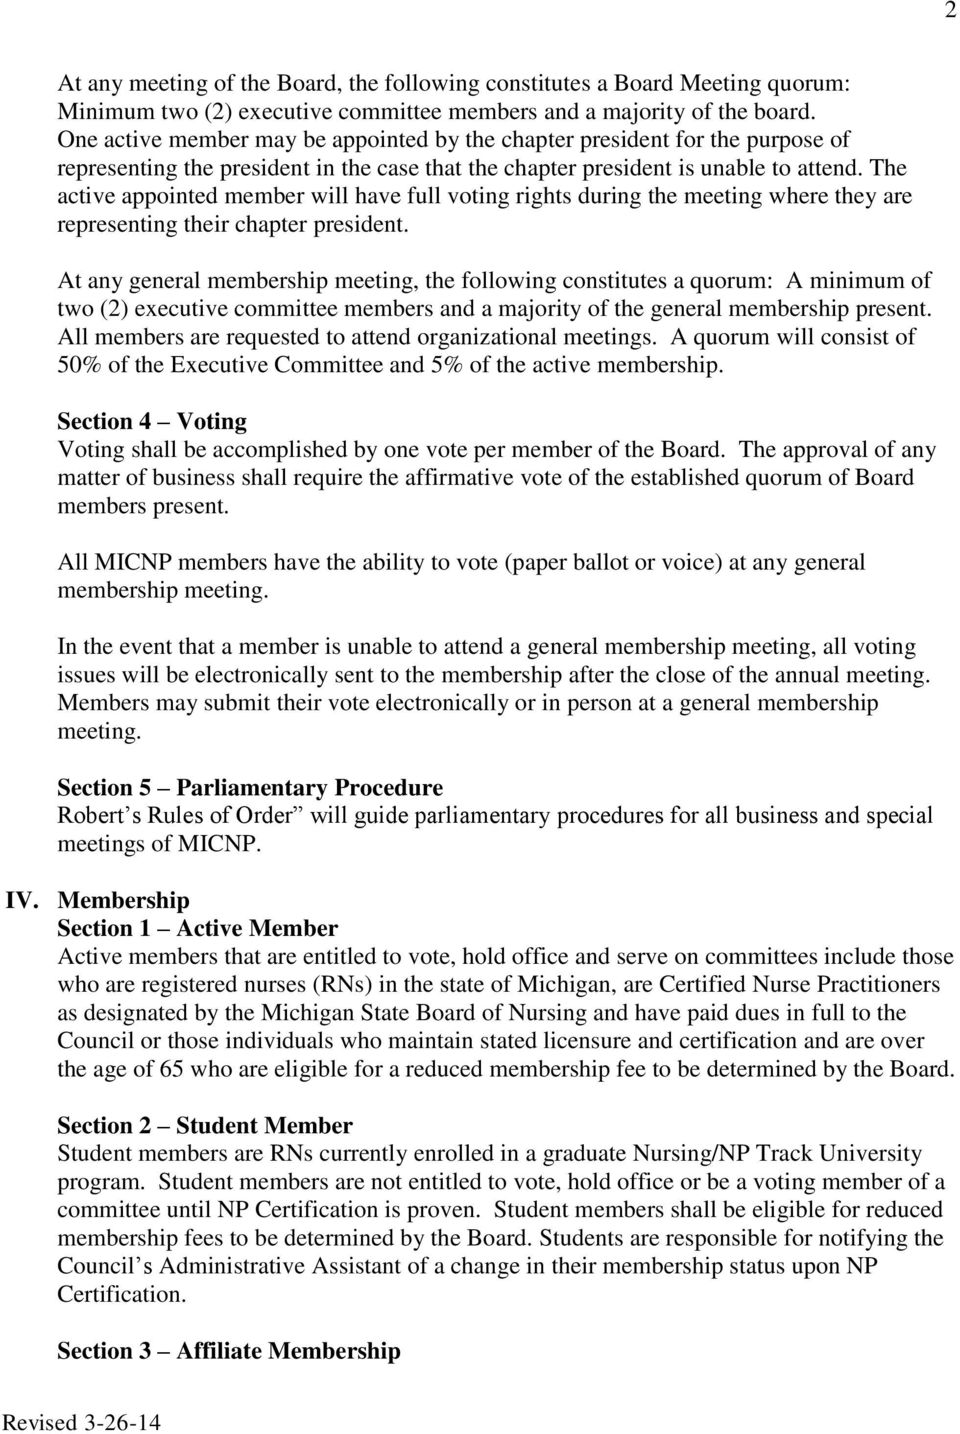 The active appointed member will have full voting rights during the meeting where they are representing their chapter president.